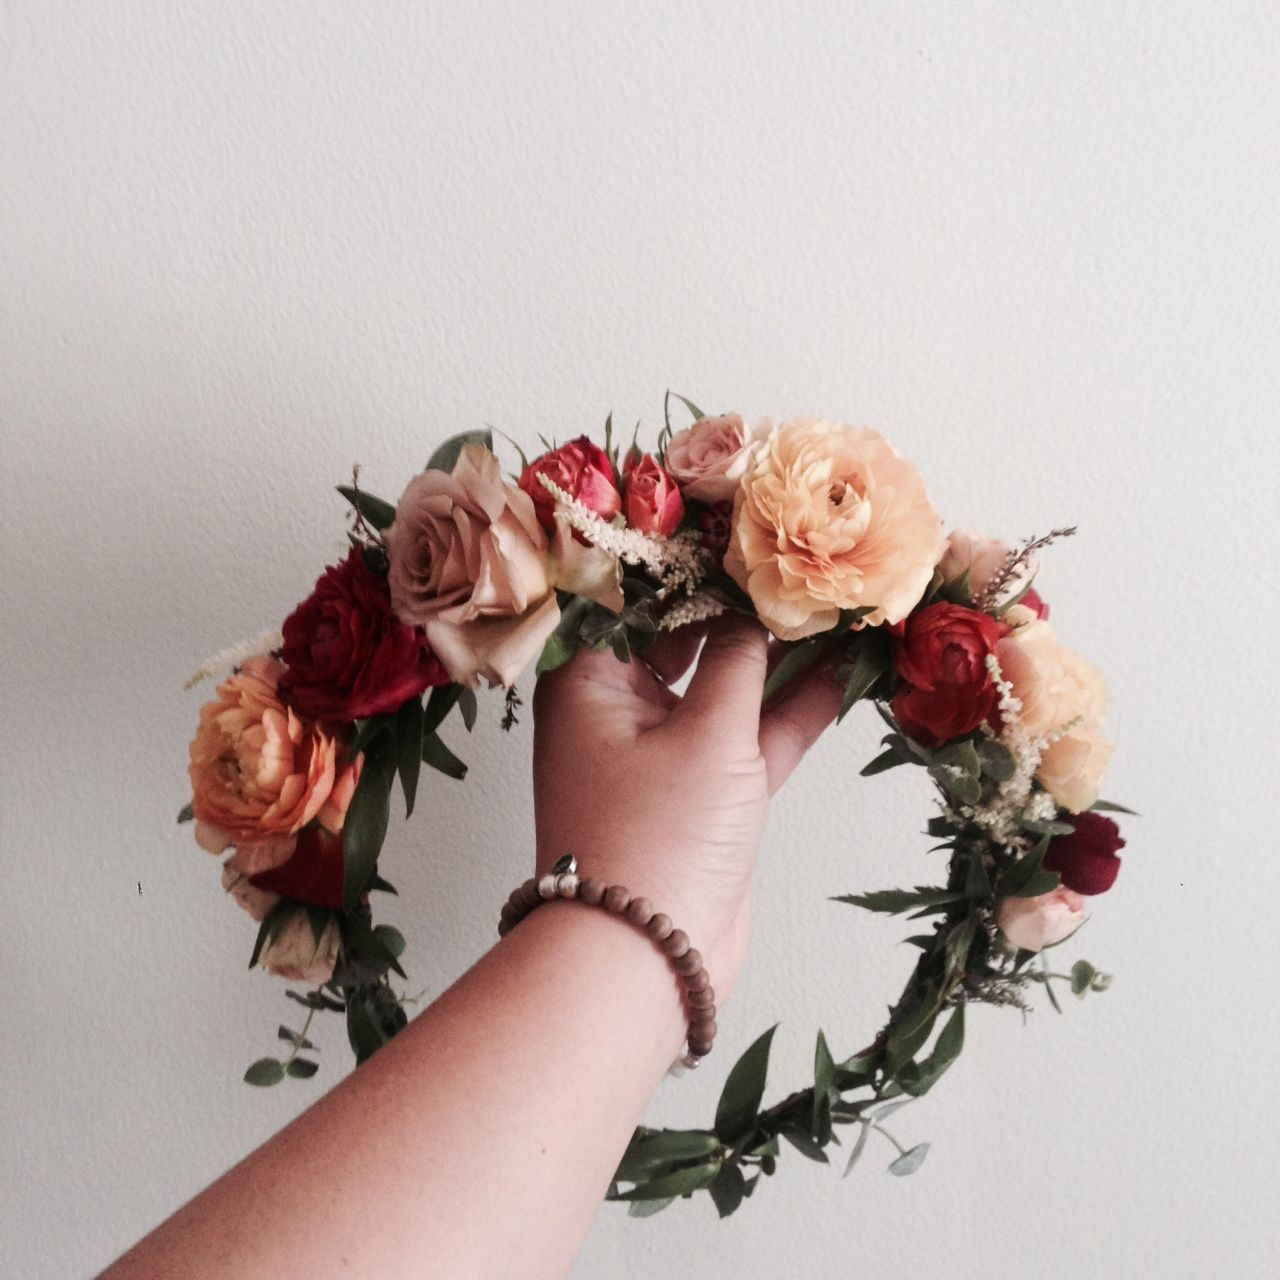 The Marcella Crown Peach And Burgundy Ranunculus Spiral Eucalyptus And Blush Spray Roses Www Thecrowncollective Co Flower Crown Wedding Crown Floral Crown